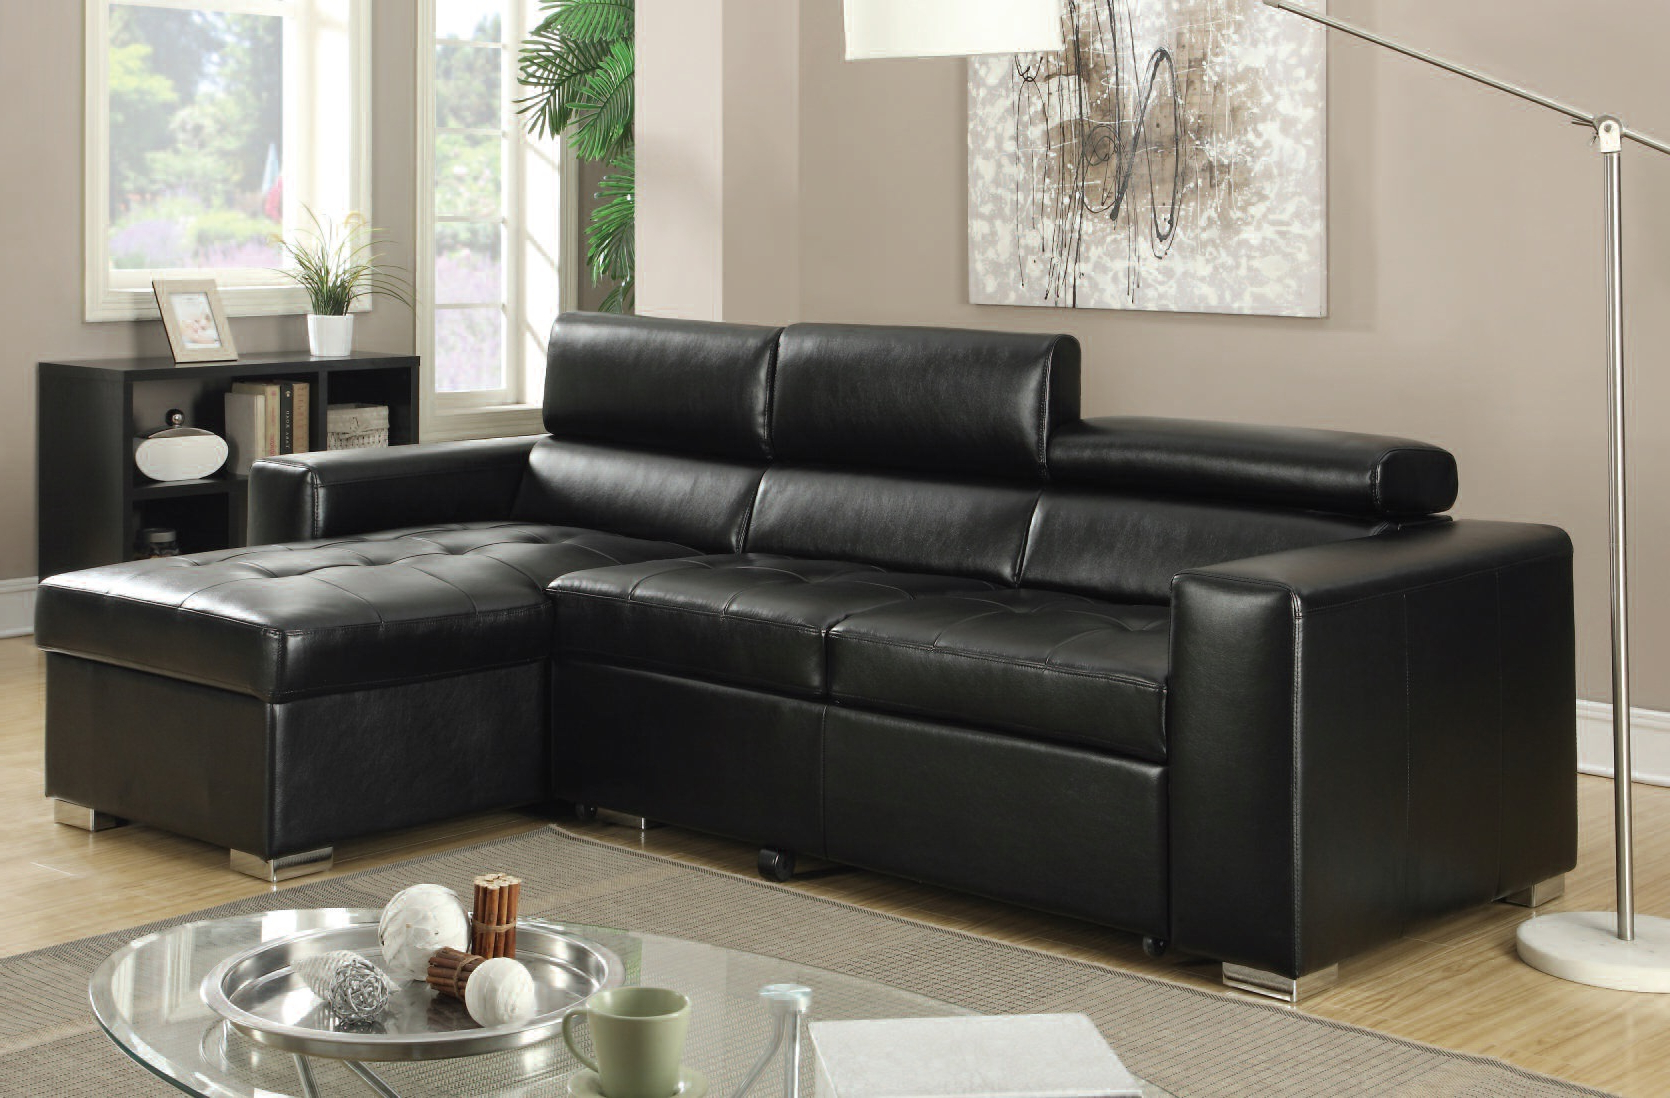 Acme Furniture Aidan Black Bonded Leather Sectional Sofa (View 6 of 20)